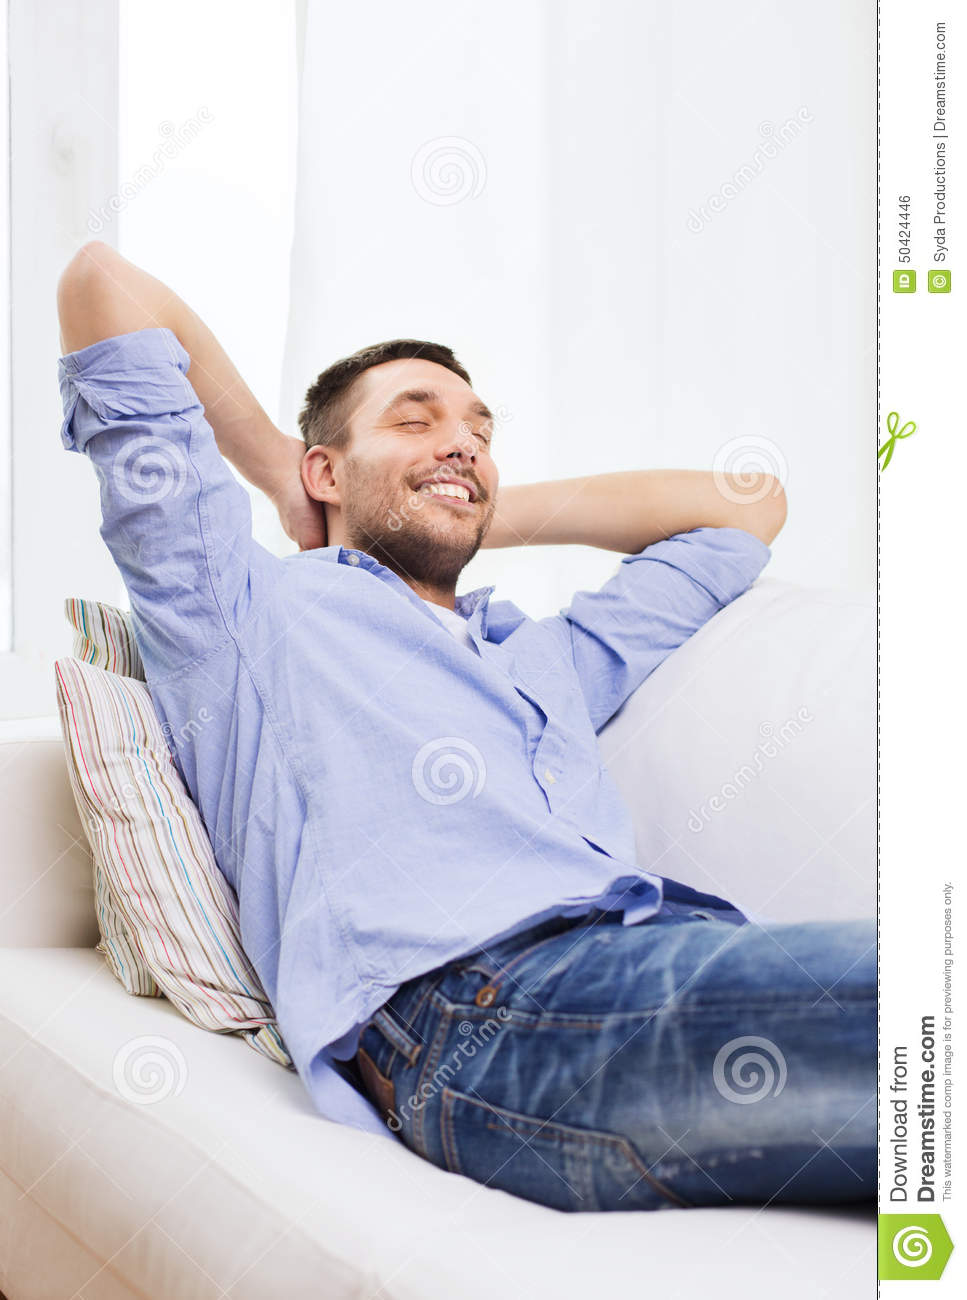 Smiling Man Relaxing On Couch At Home Stock Photo - Image ...